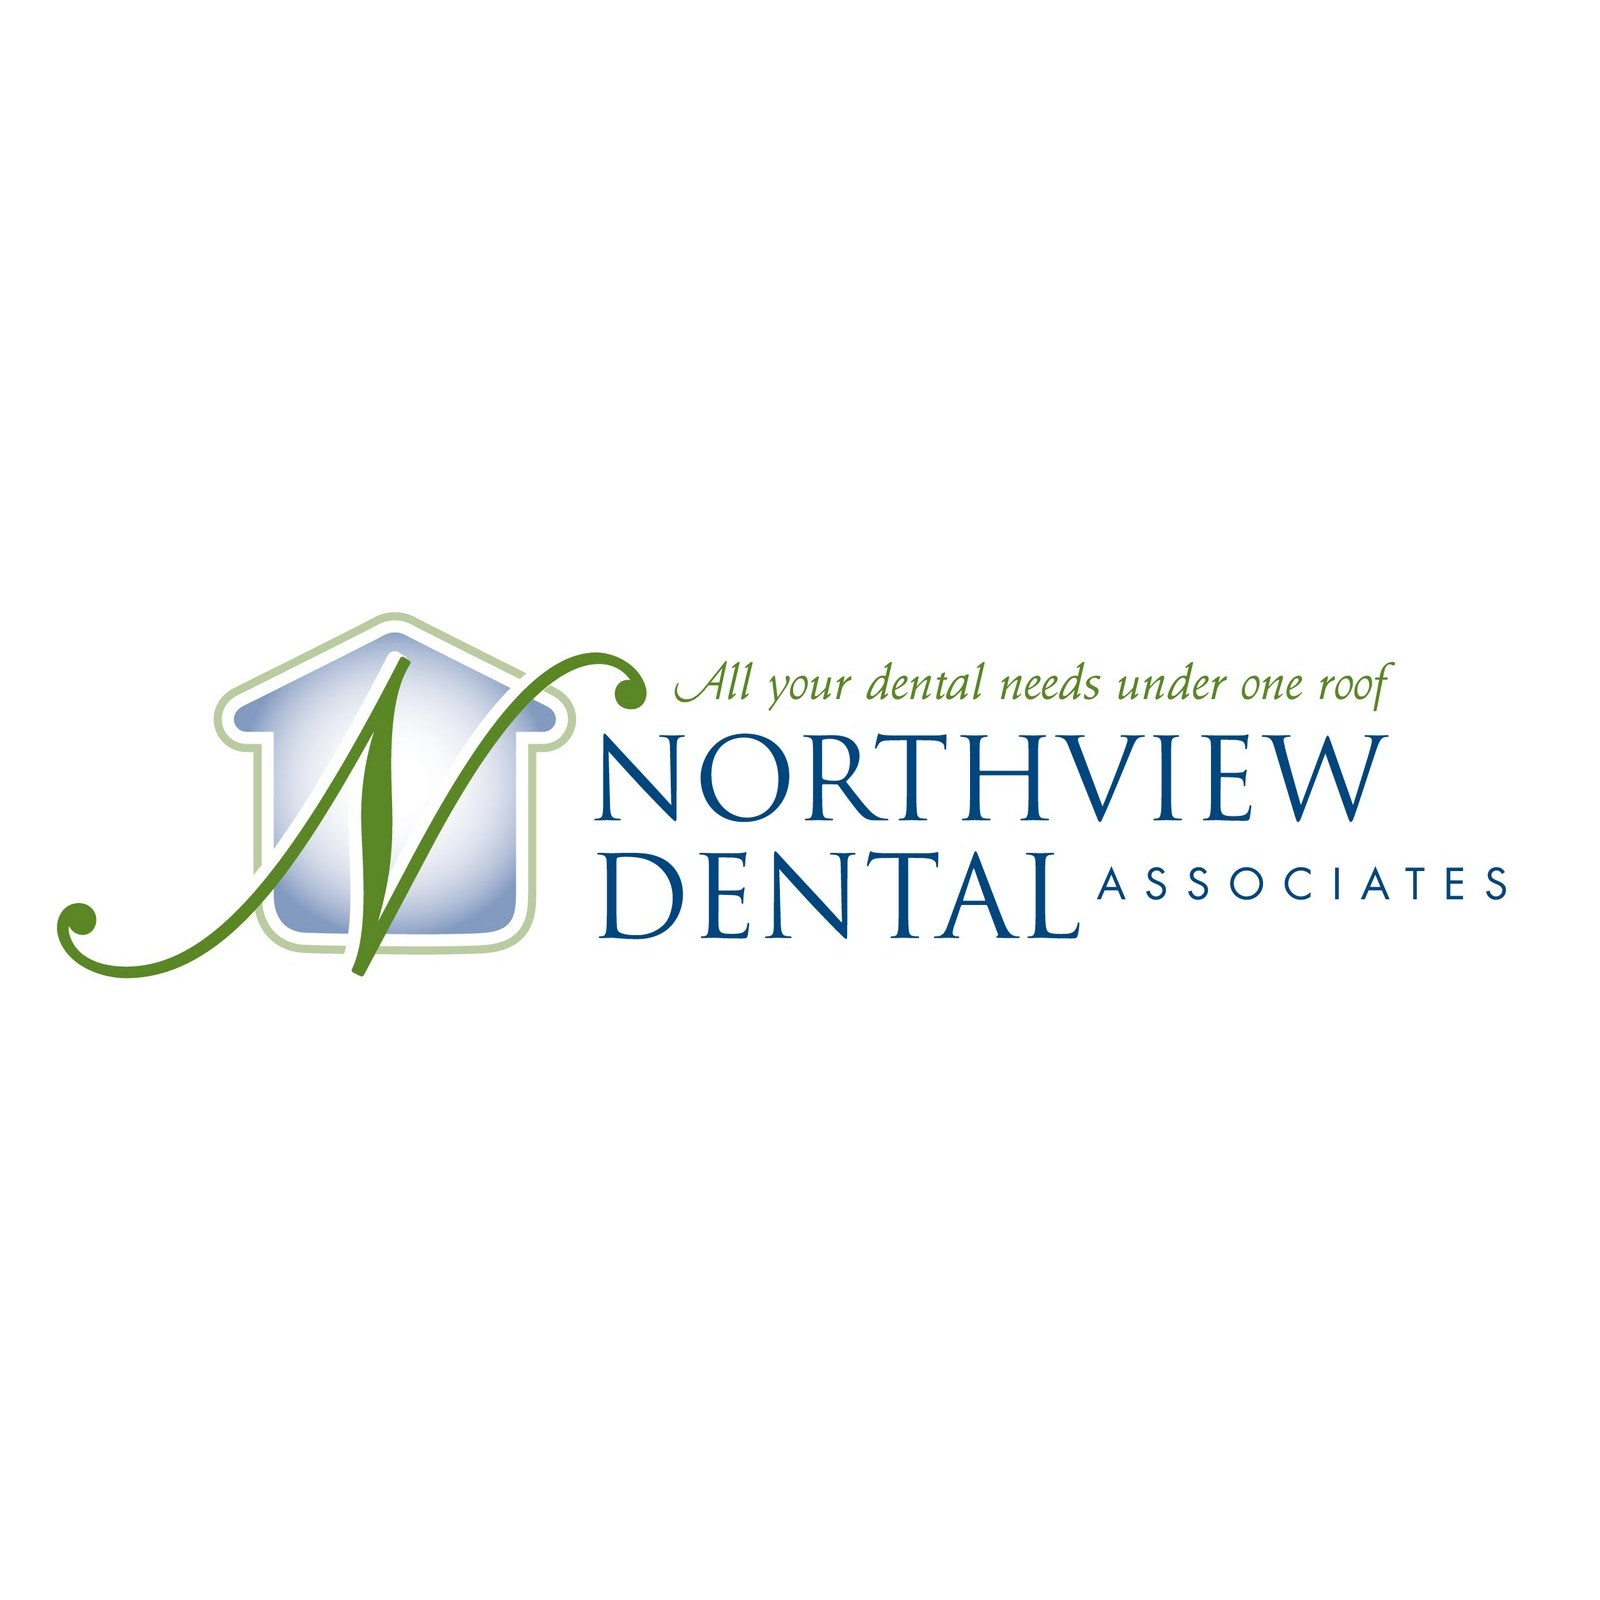 North View Dental Associates